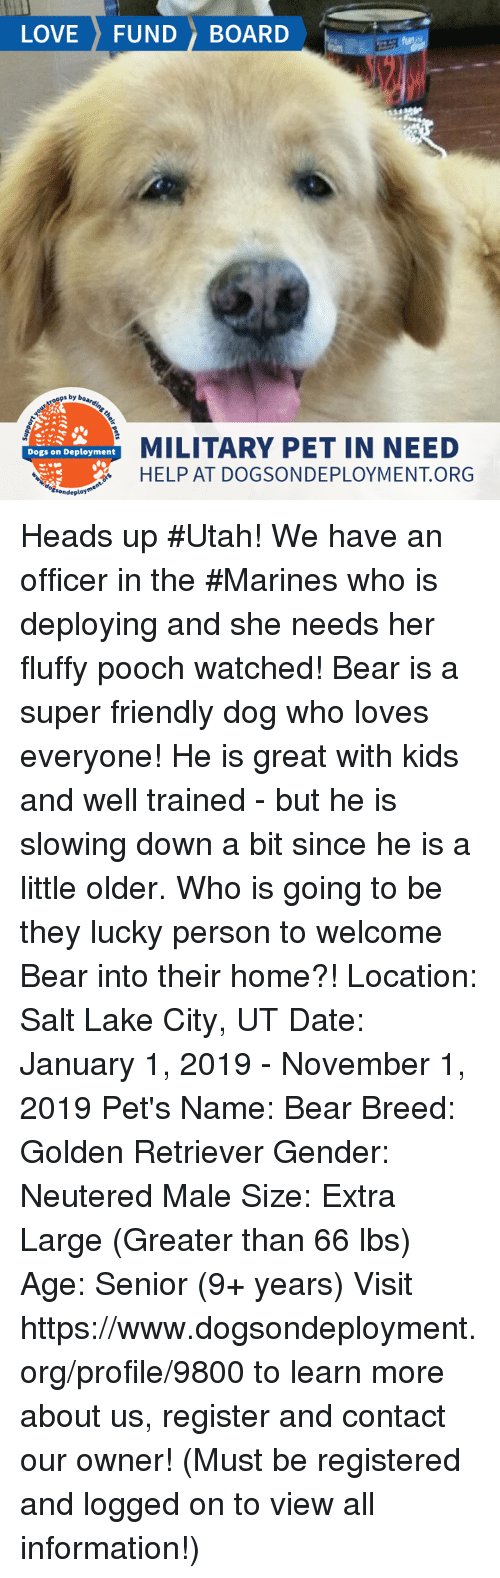 Dogs, Love, and Memes: LOVE FUND BOARD  ops by  MILITARY PET IN NEED  HELP AT DOGSONDEPLOYMENT ORG  Dogs on Deployment  sonde Heads up #Utah! We have an officer in the #Marines who is deploying and she needs her fluffy pooch watched! Bear is a super friendly dog who loves everyone! He is great with kids and well trained - but he is slowing down a bit since he is a little older.  Who is going to be they lucky person to welcome Bear into their home?!  Location: Salt Lake City, UT Date: January 1, 2019 - November 1, 2019   Pet's Name: Bear Breed: Golden Retriever Gender: Neutered Male Size: Extra Large (Greater than 66 lbs) Age: Senior (9+ years)  Visit https://www.dogsondeployment.org/profile/9800 to learn more about us, register and contact our owner! (Must be registered and logged on to view all information!)